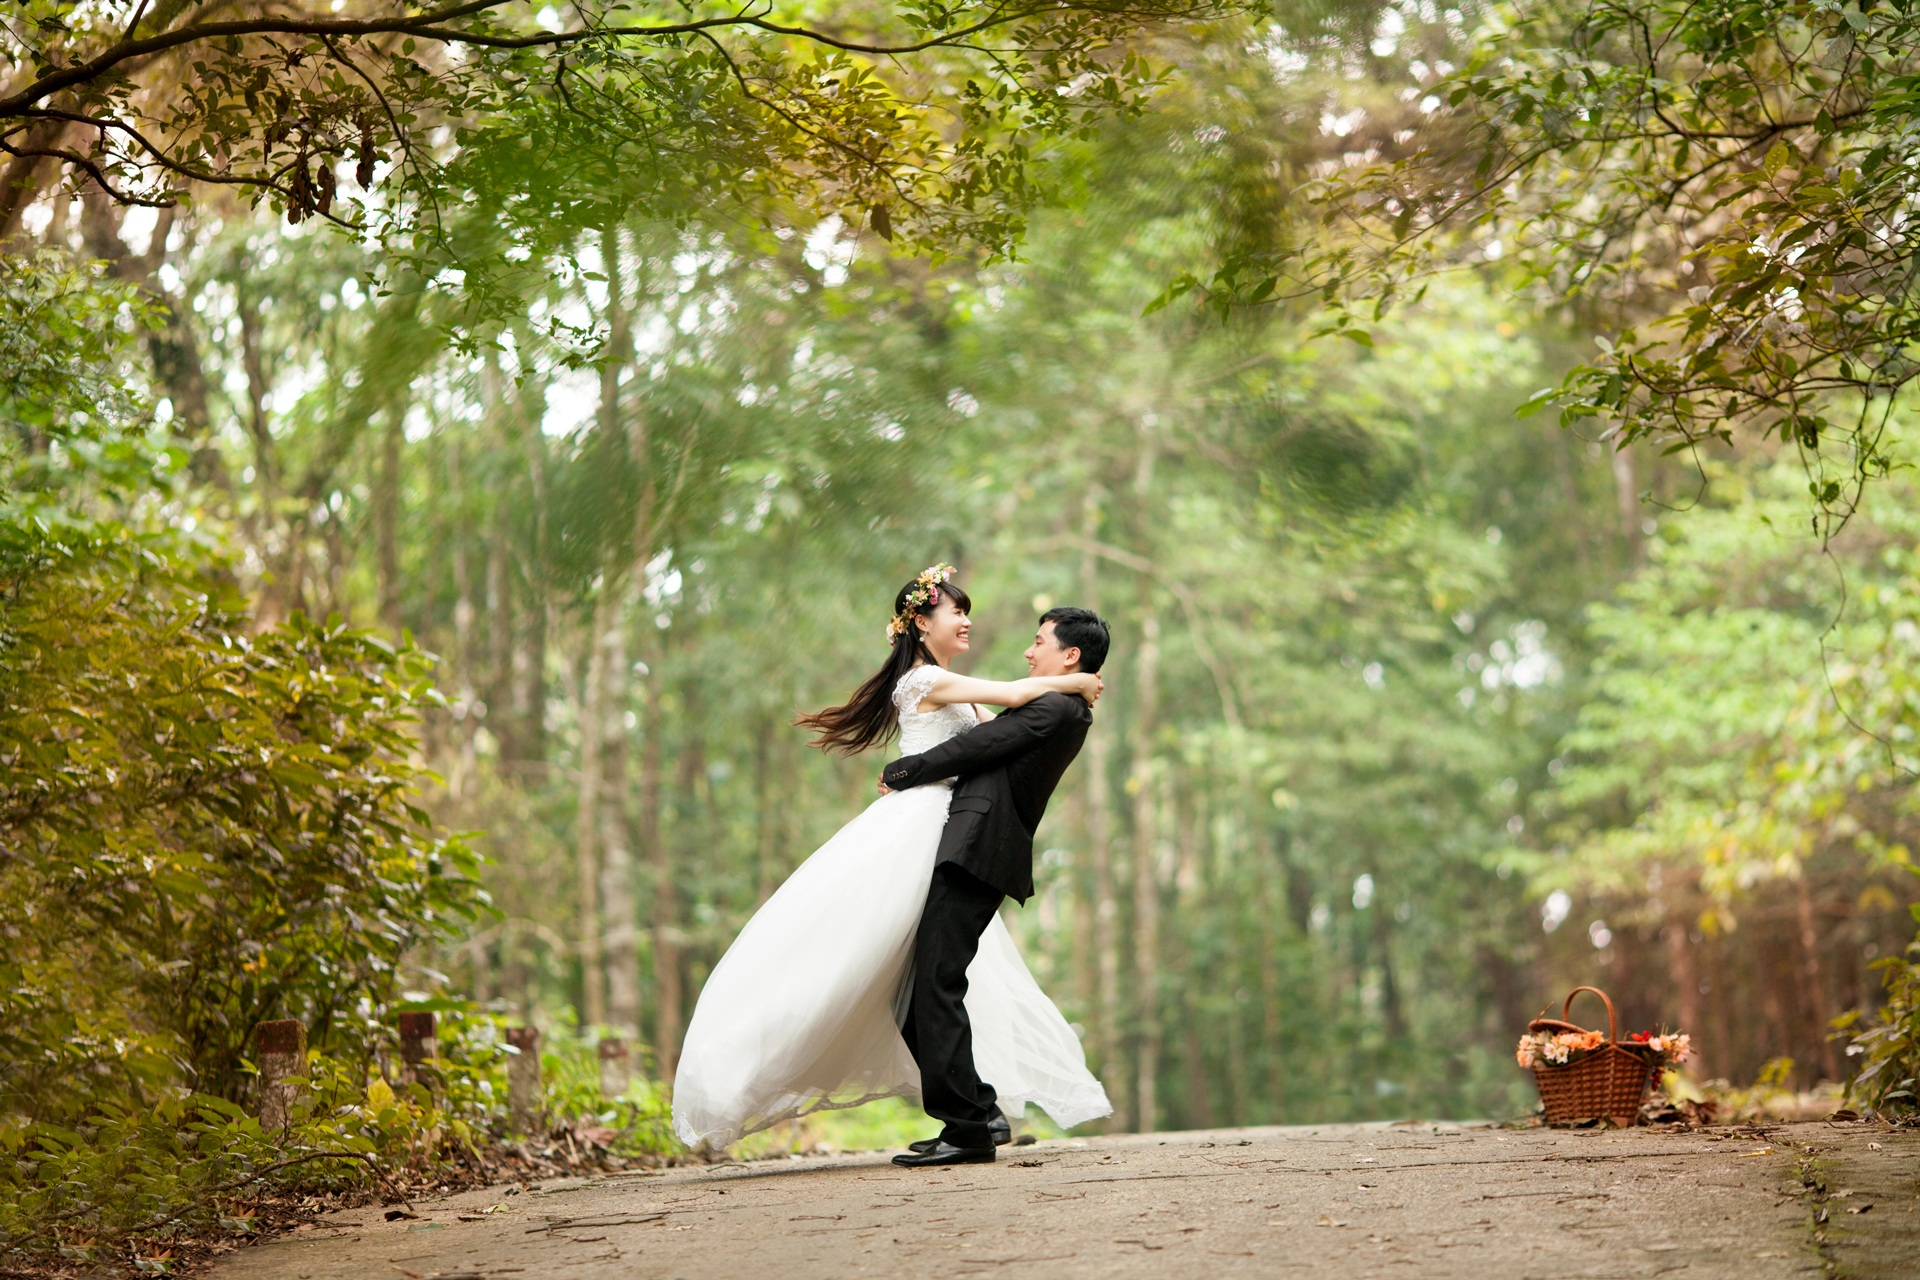 wedding-love-happy-couple-51322.jpeg (1920×1280)